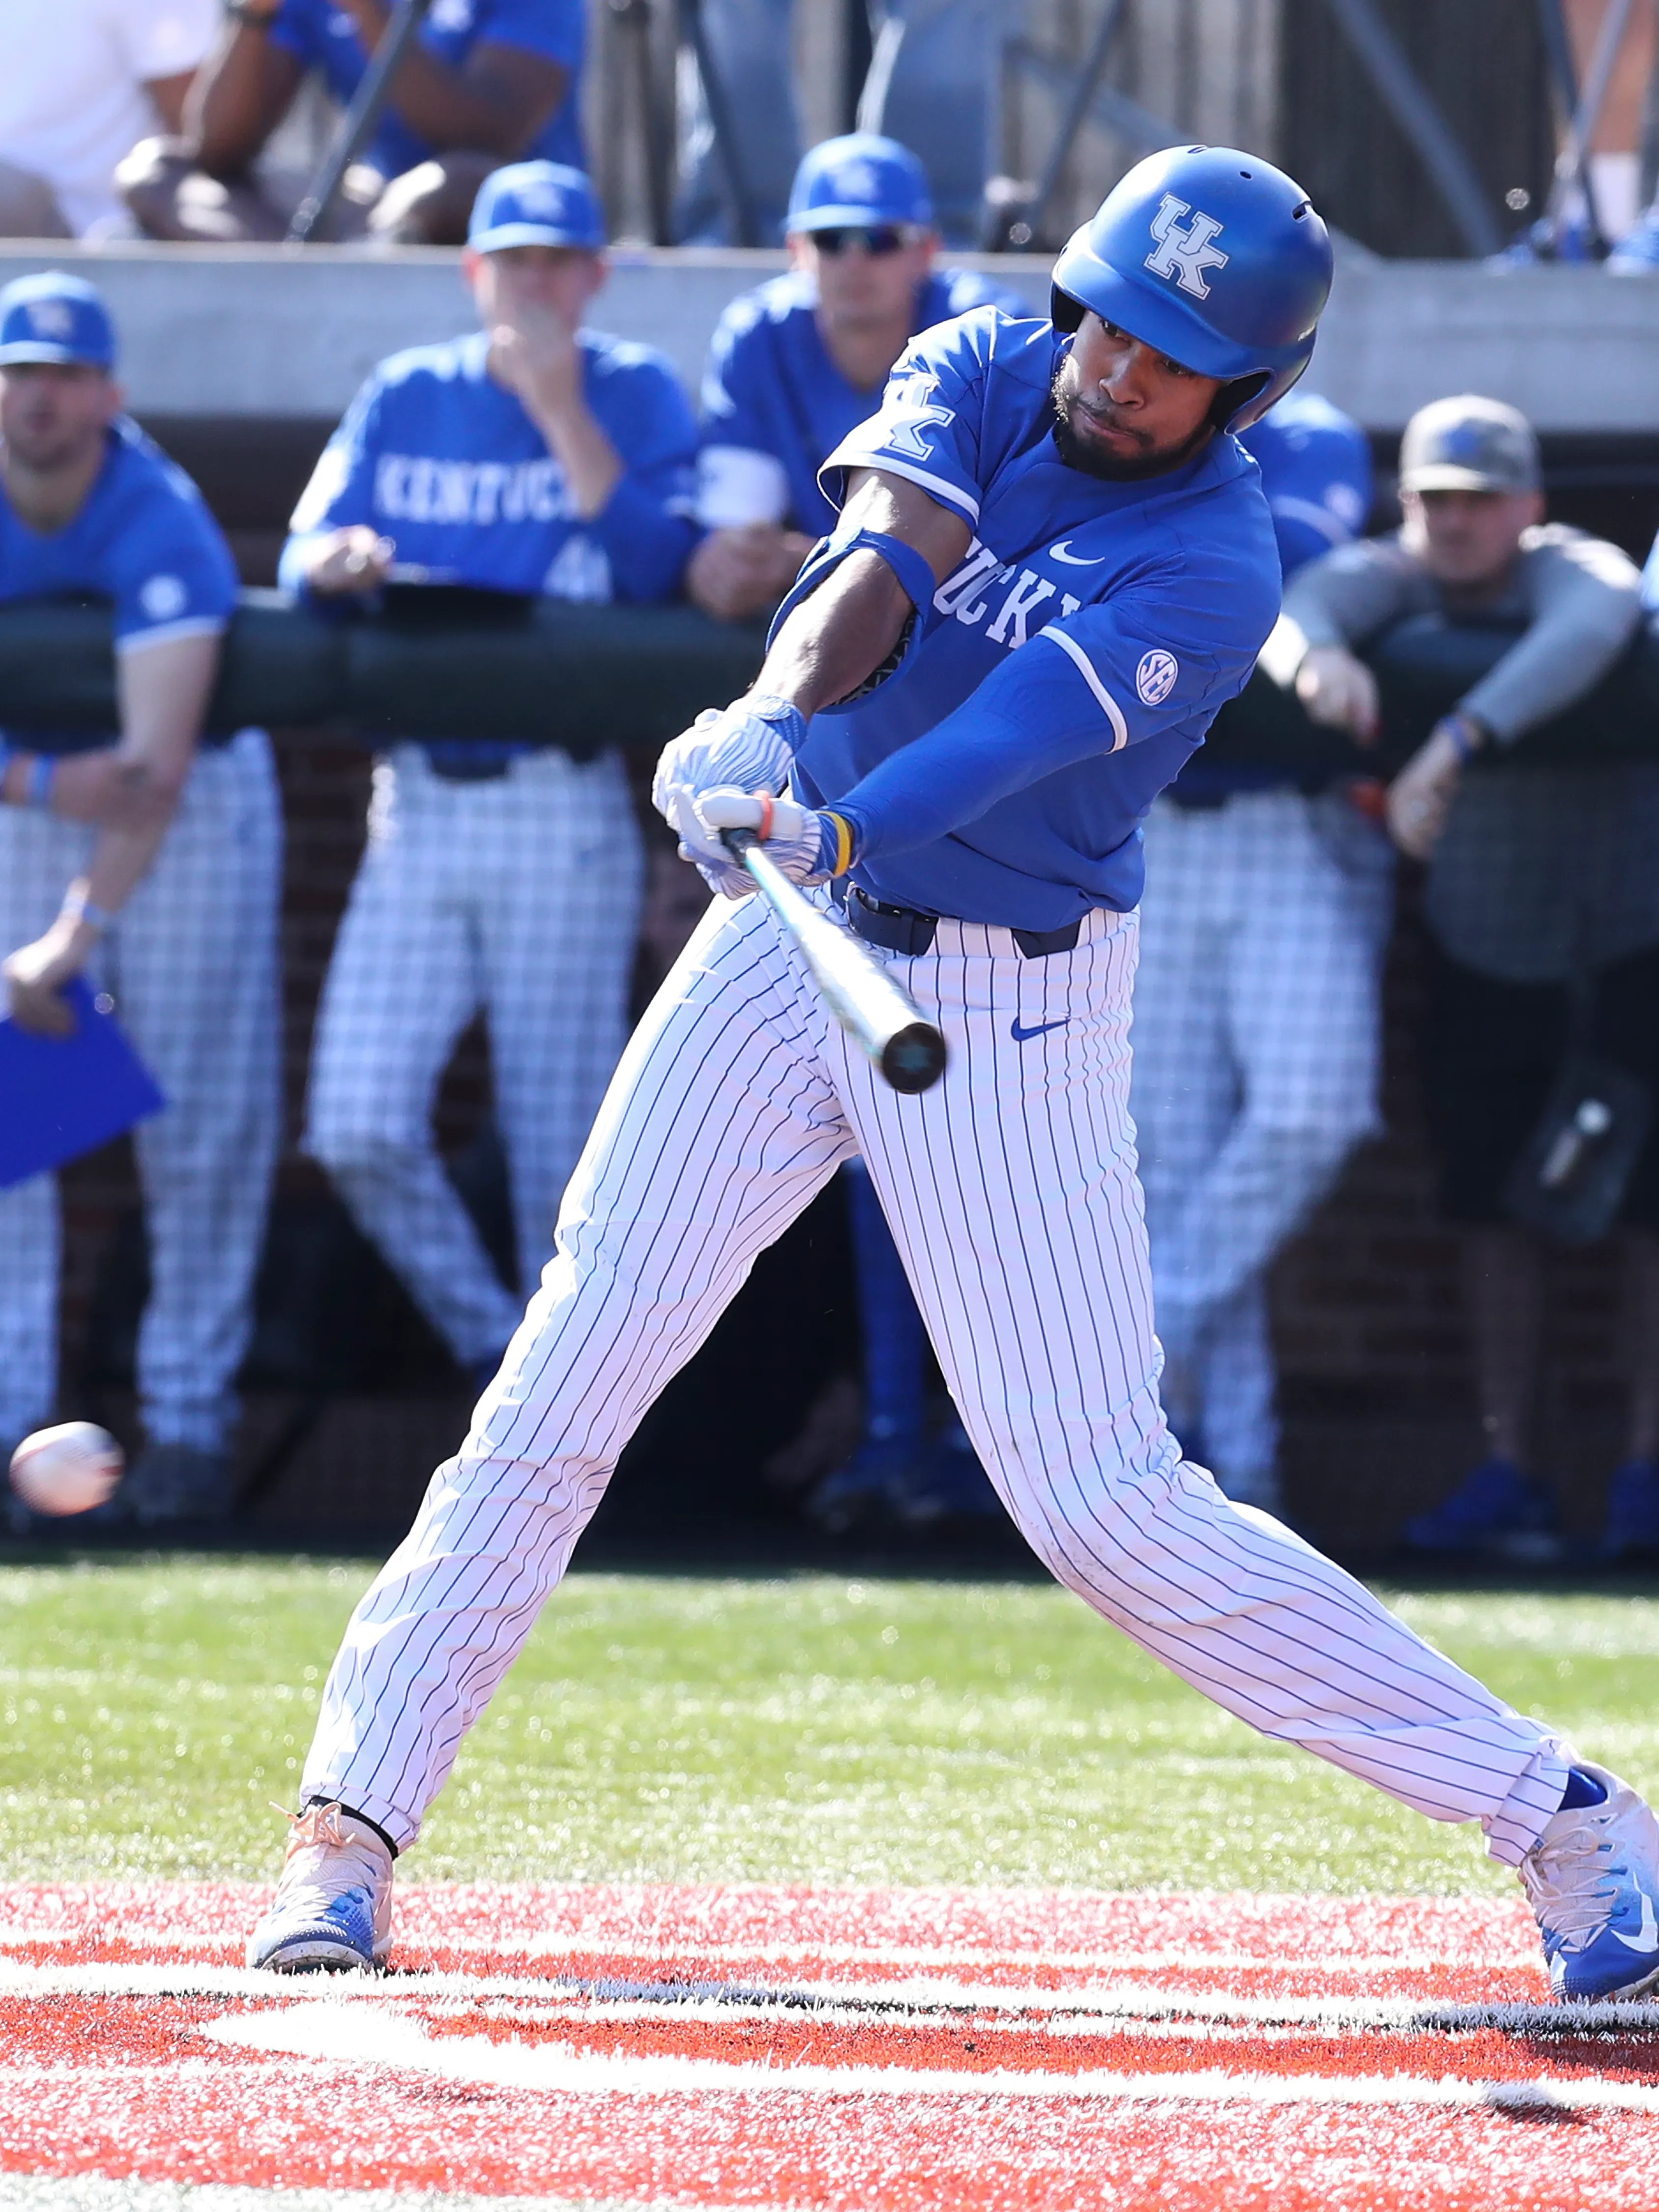 Kentucky Baseball Takes Down Louisville In Ugly Rivalry Game